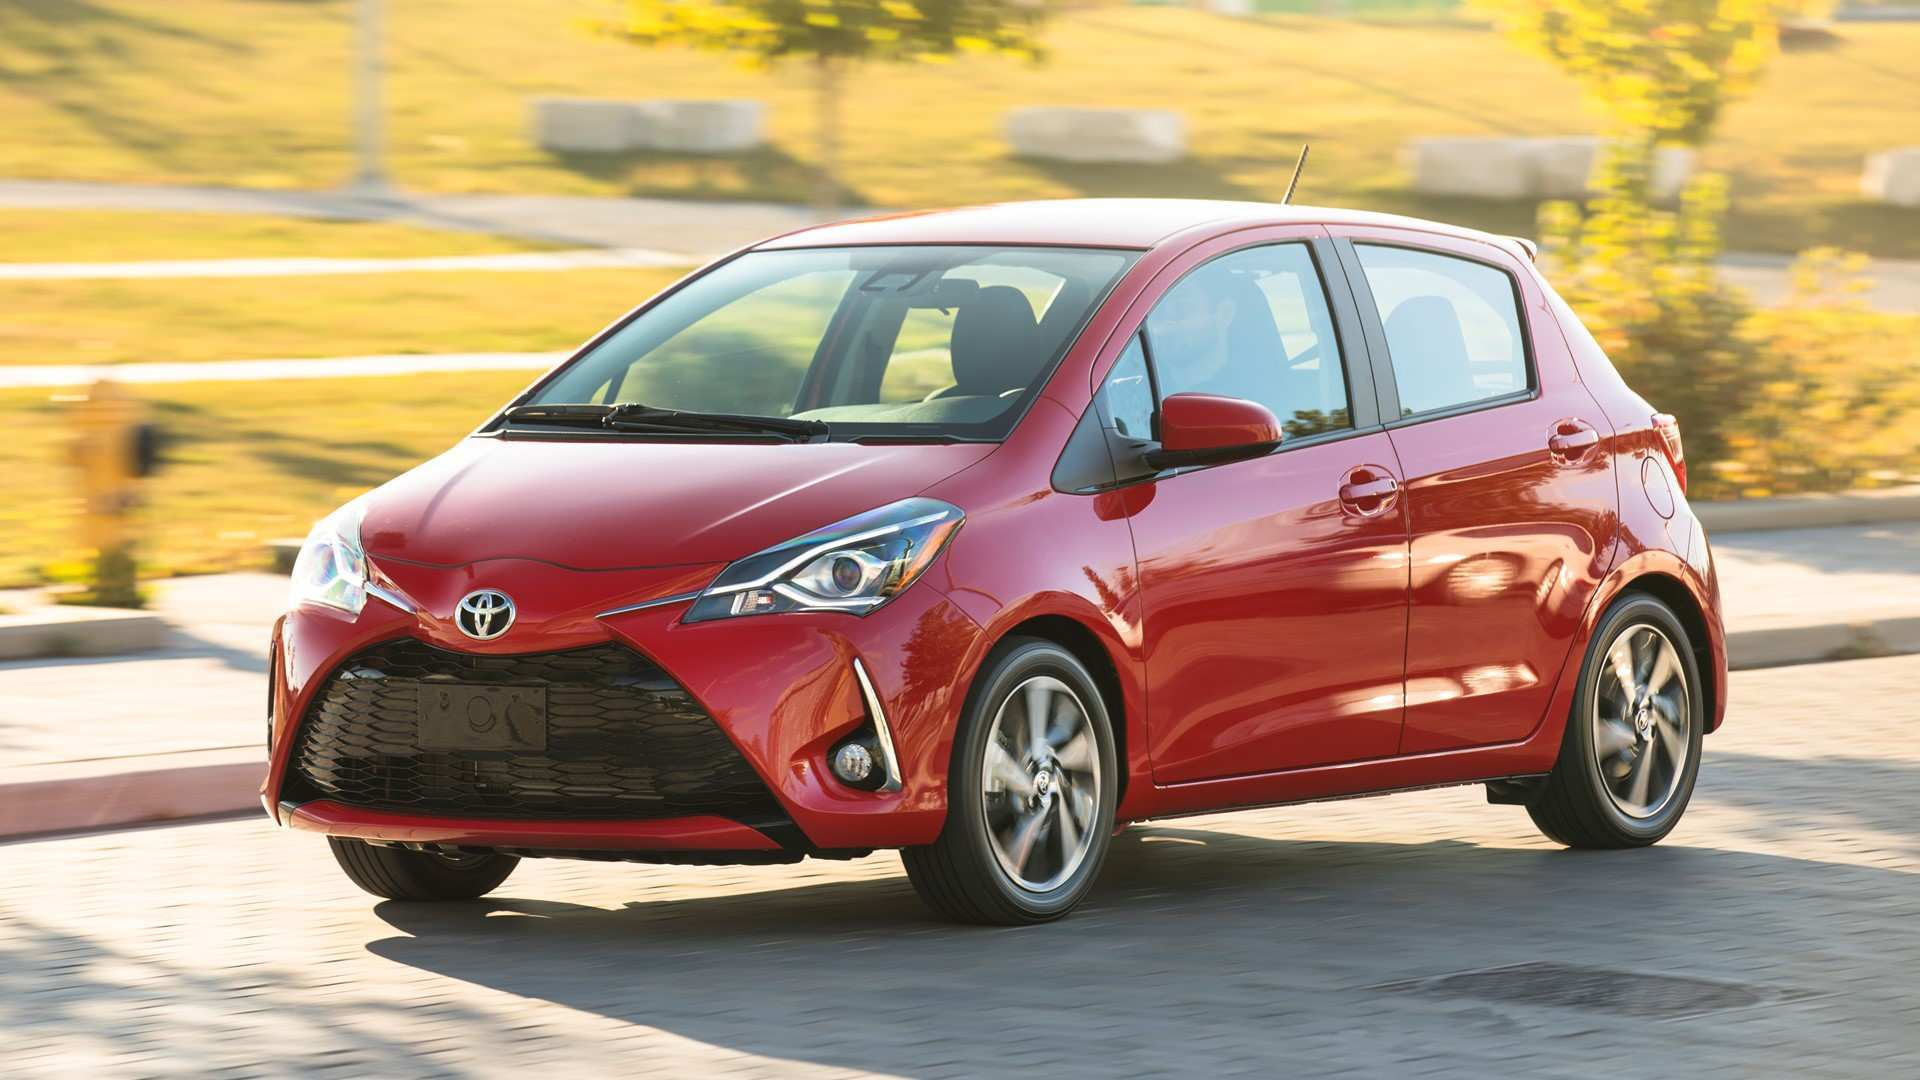 53 Gallery of Best Yaris Toyota 2019 Precio Price And Review Price and Review with Best Yaris Toyota 2019 Precio Price And Review